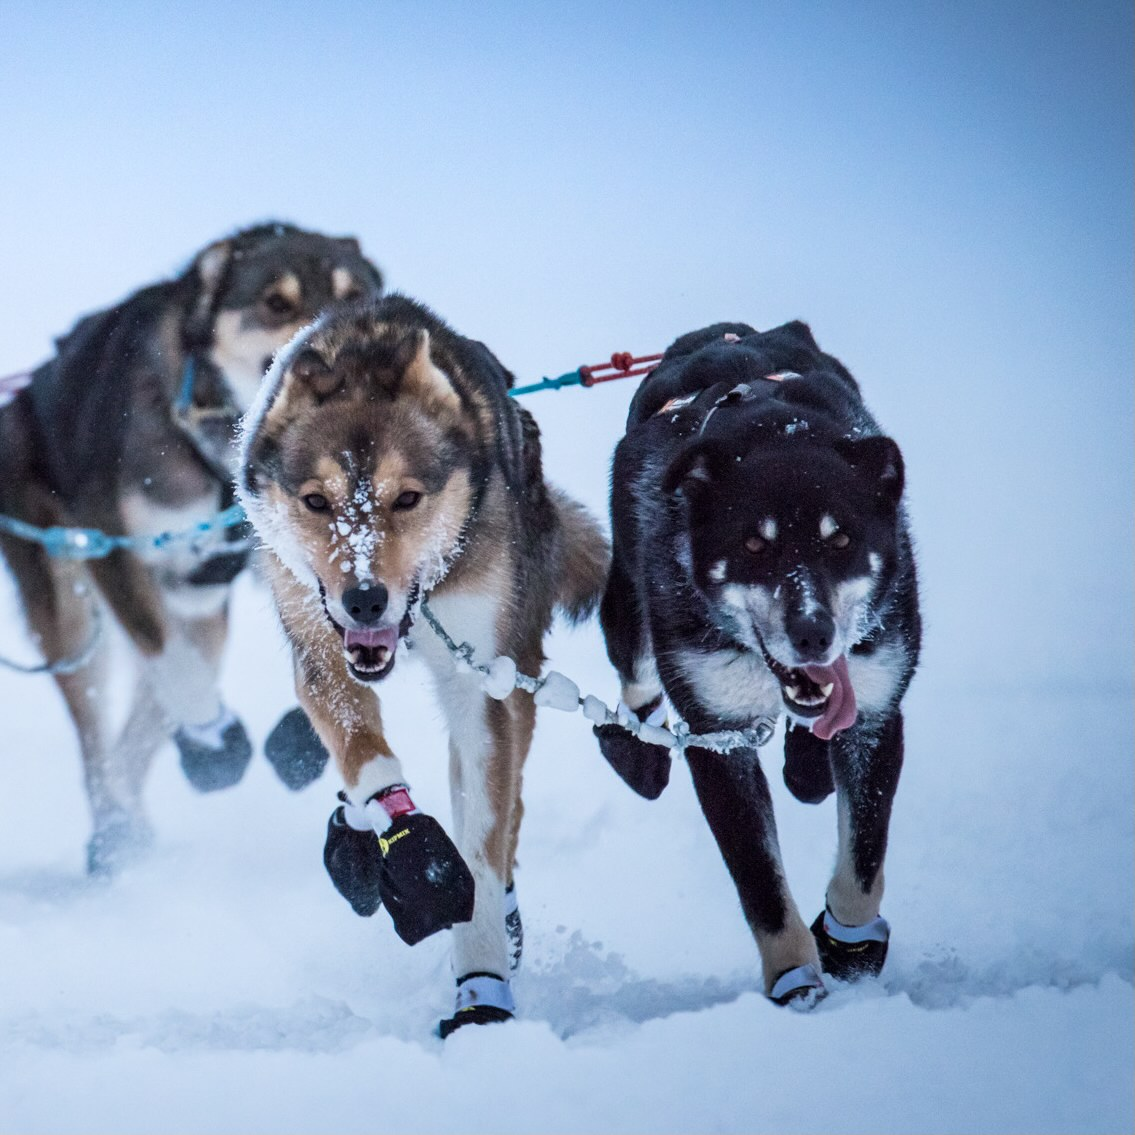 Two lead dogs on a sled dog team plow joyfully down the trail